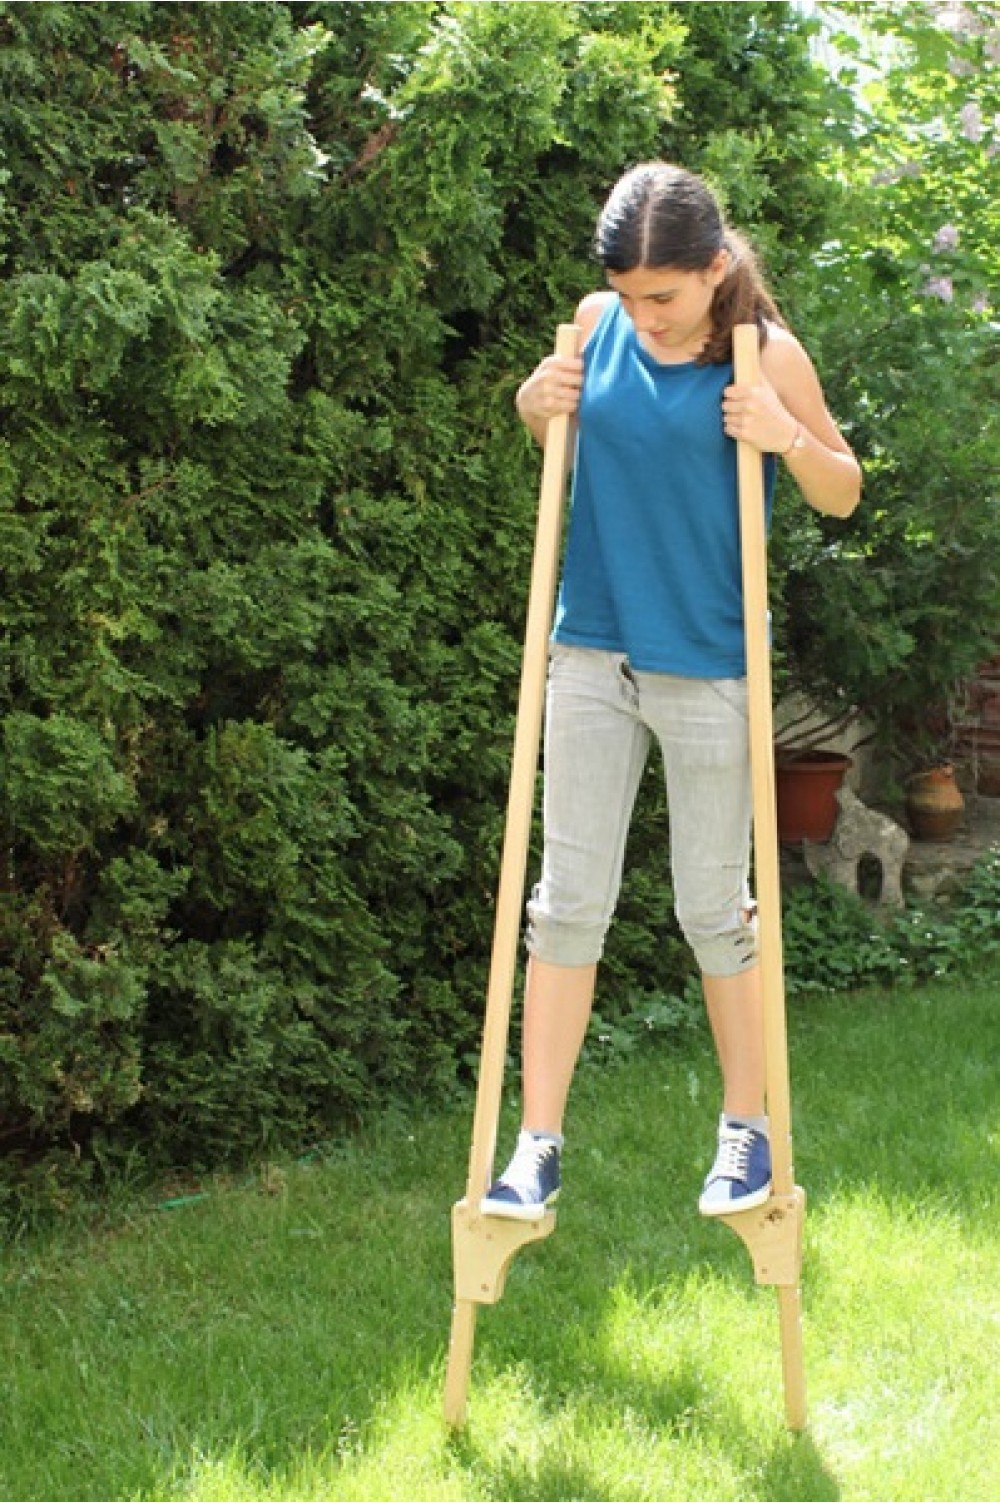 Wooden Stilts for children | Wooden Legs | Special Gift for Kids | Wooden Hooks | Eco friendly kids toy